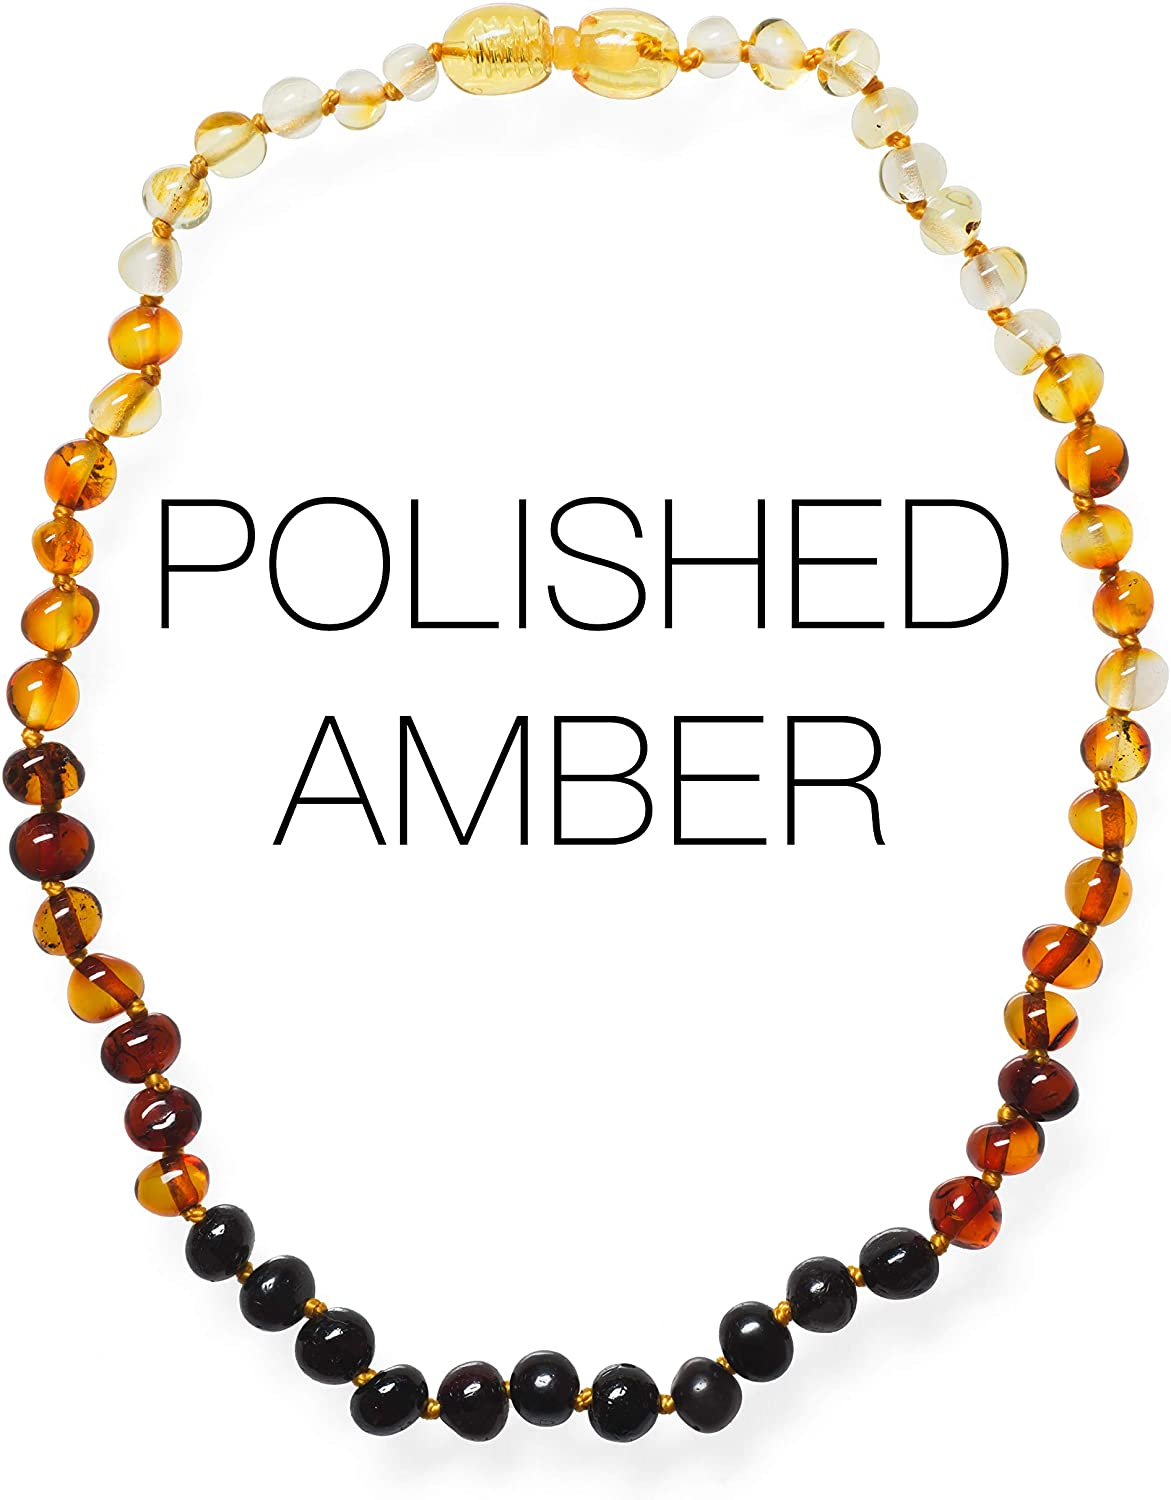 Meraki Amber Necklace - Polished Baroque Baltic Amber Necklace   Alternative Pain Relief - Certified Genuine Baltic Amber Necklace   Rainbow Color (11.5 Inches)